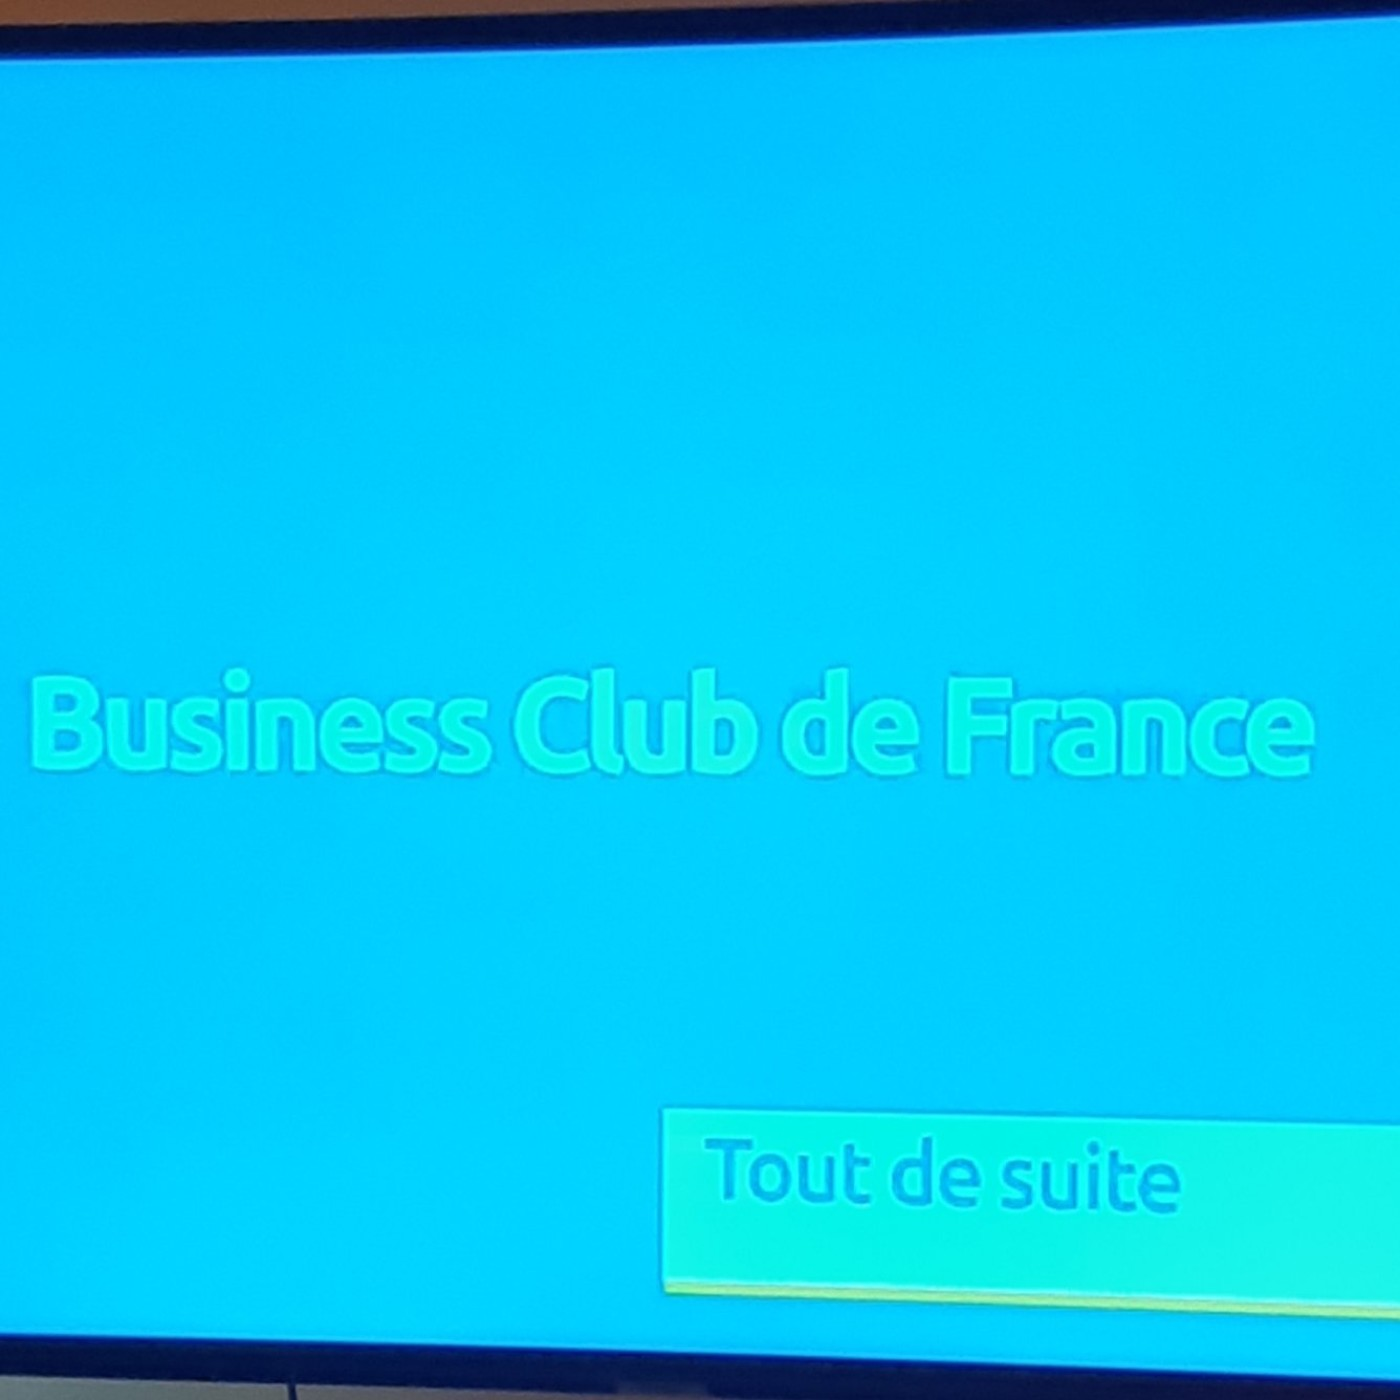 Business Club de France TV S2020 E42 G. Babinet - La France de demain